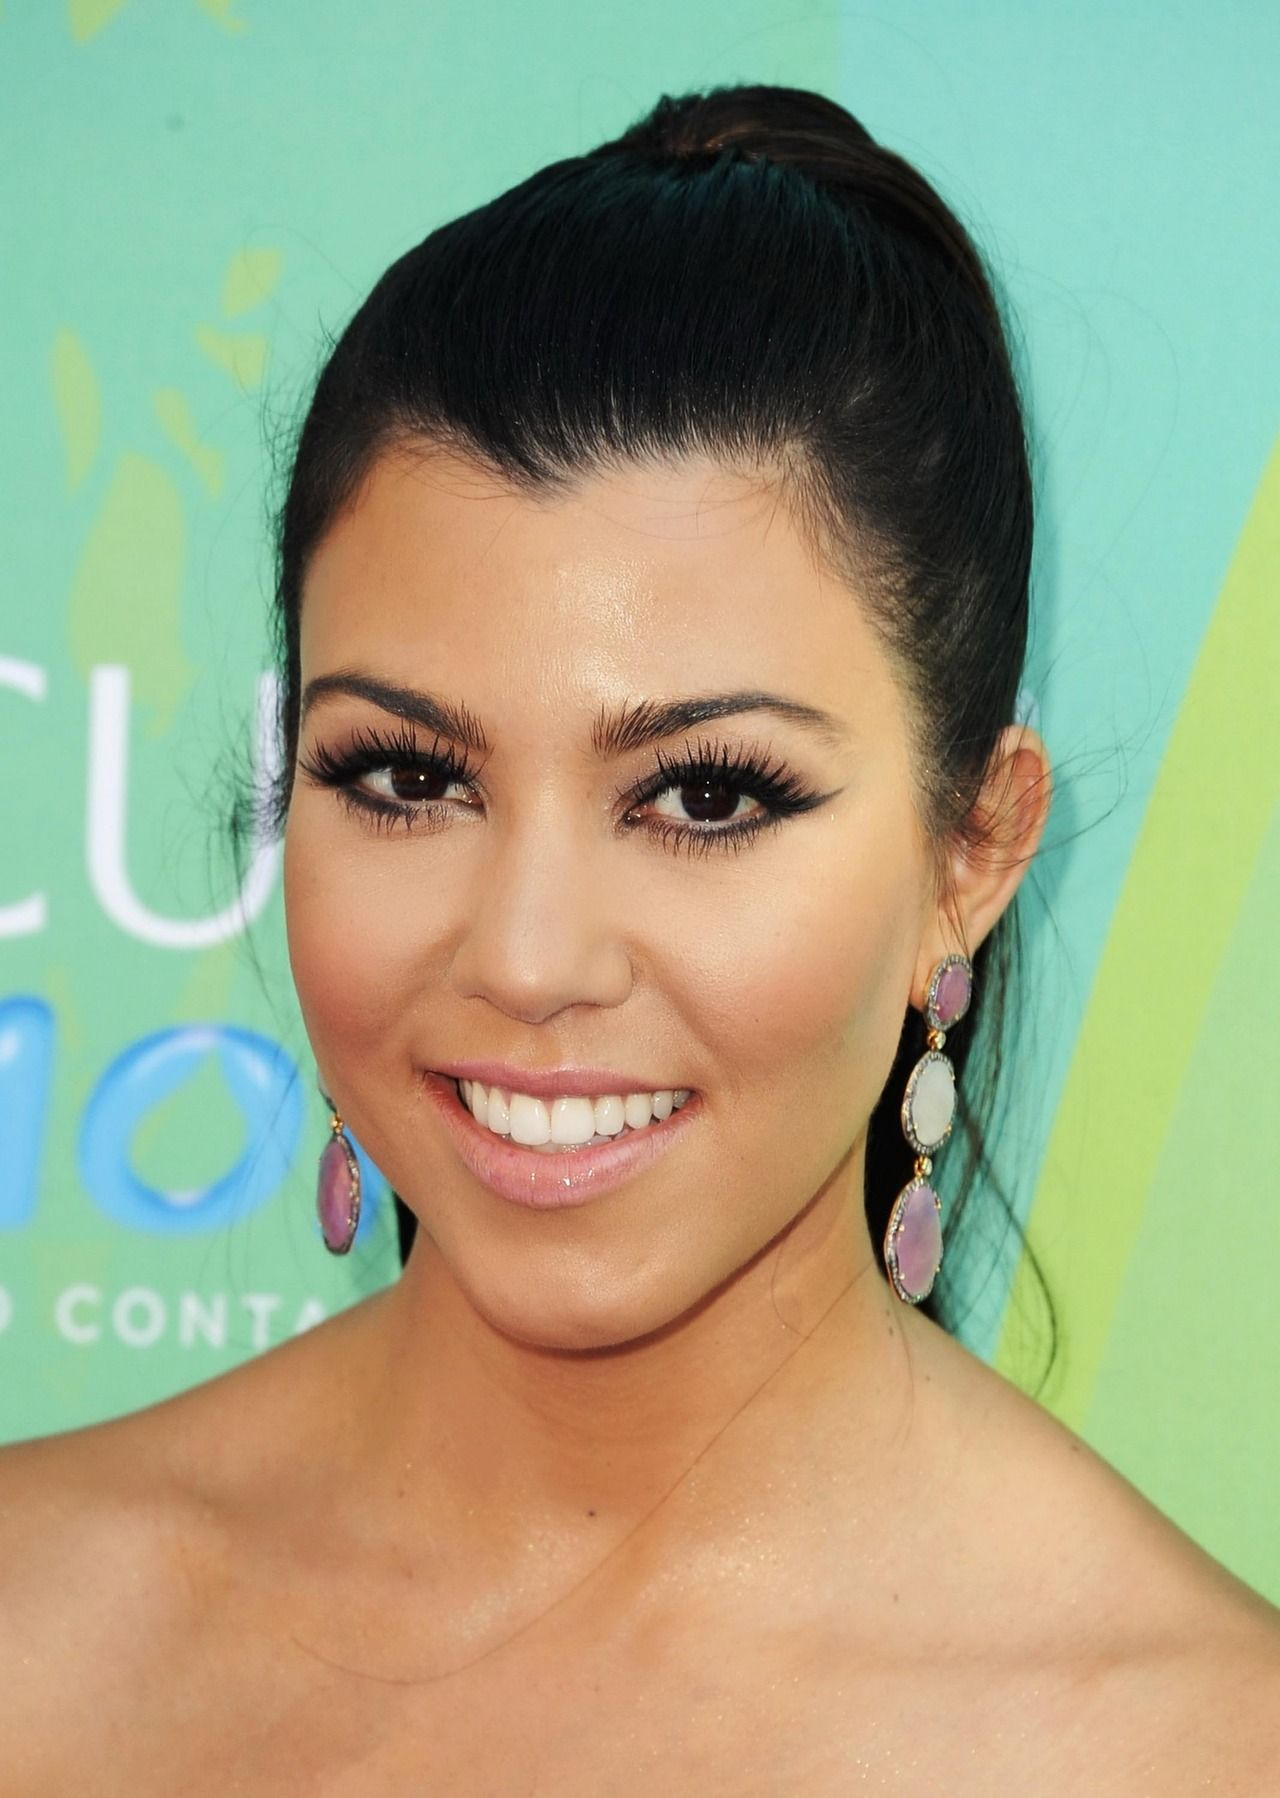 Kourtney Kardashian Makeup  Makeup  Pinterest  Kourtney